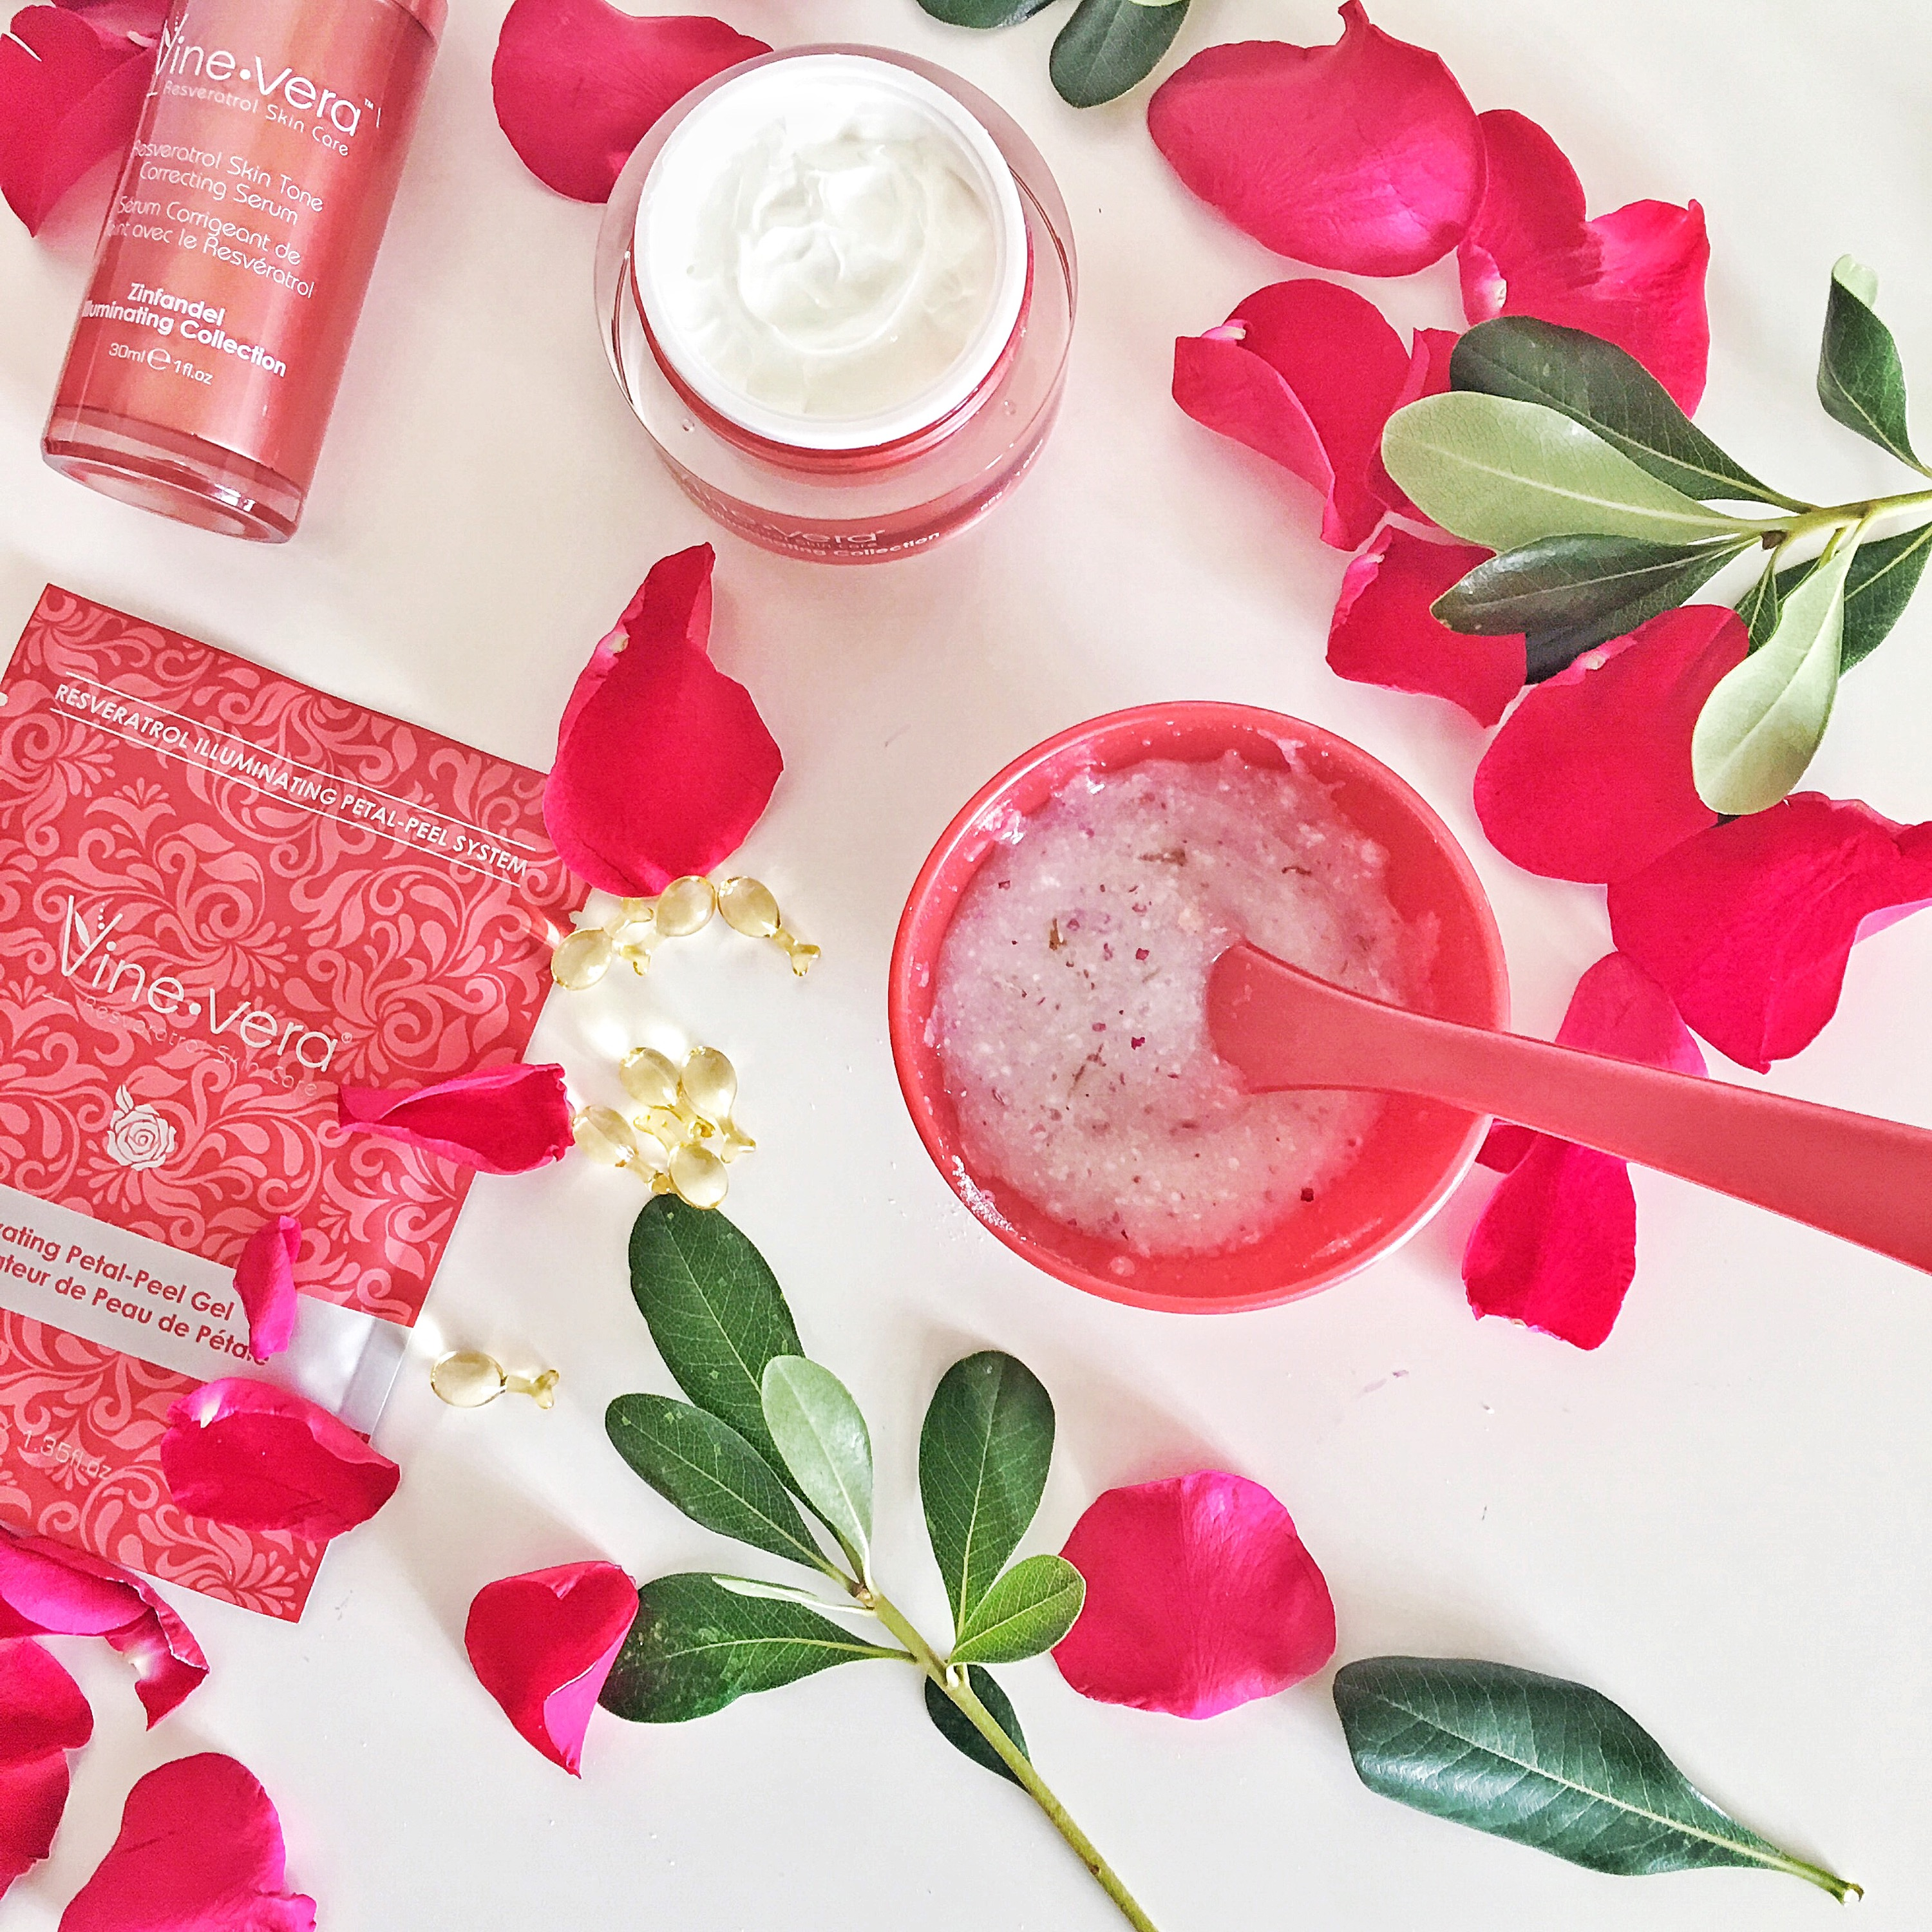 vine vera, skin care, rose water, salted sisters, face mask